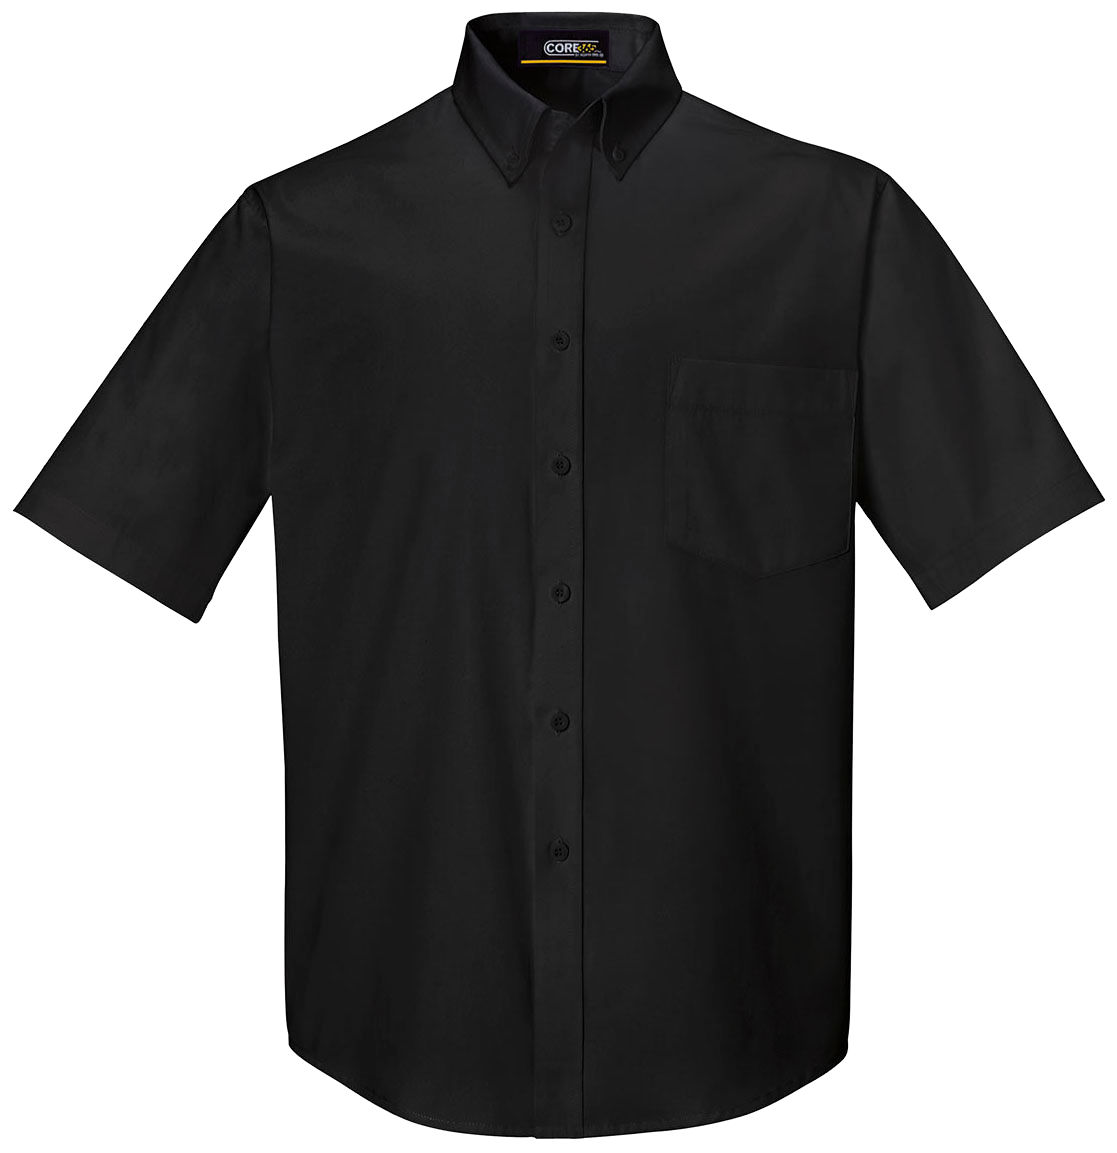 Picture of Core365 Men's Short Sleeve Twill Shirt